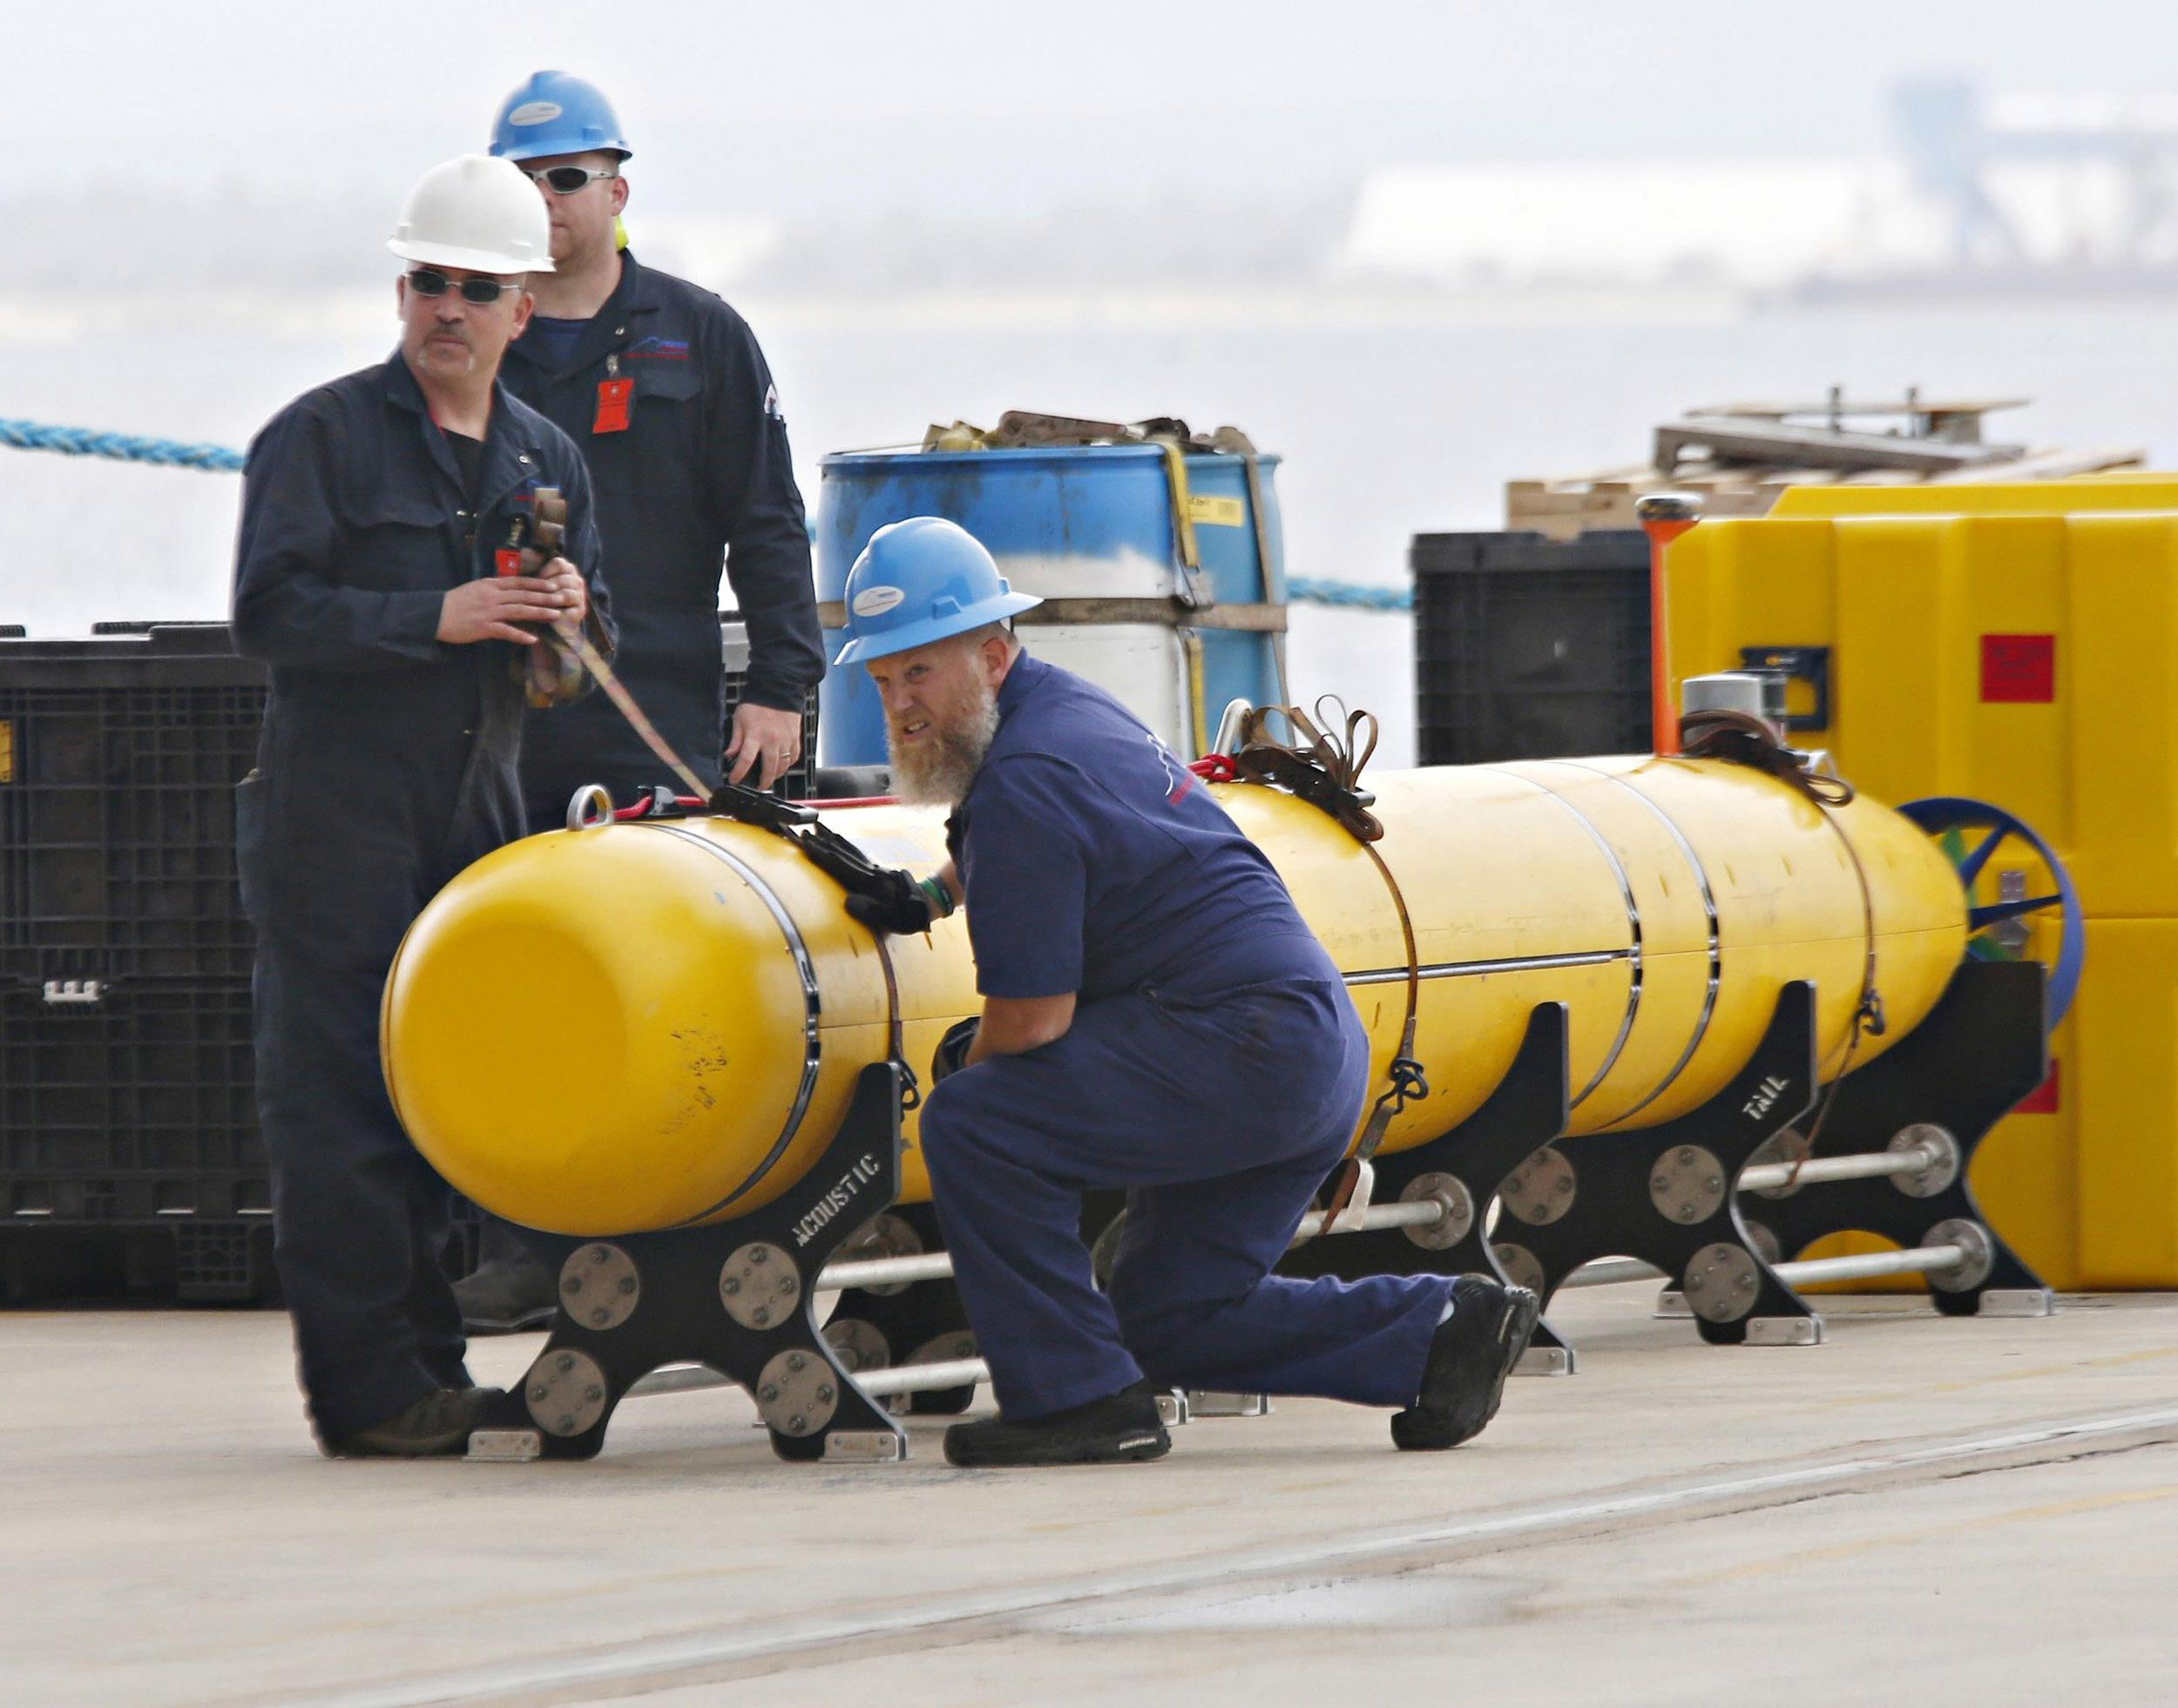 Image: Workers help secure a Phoenix underwater mapping robot before transportation on the dock at HMAS Stirling naval base near Perth